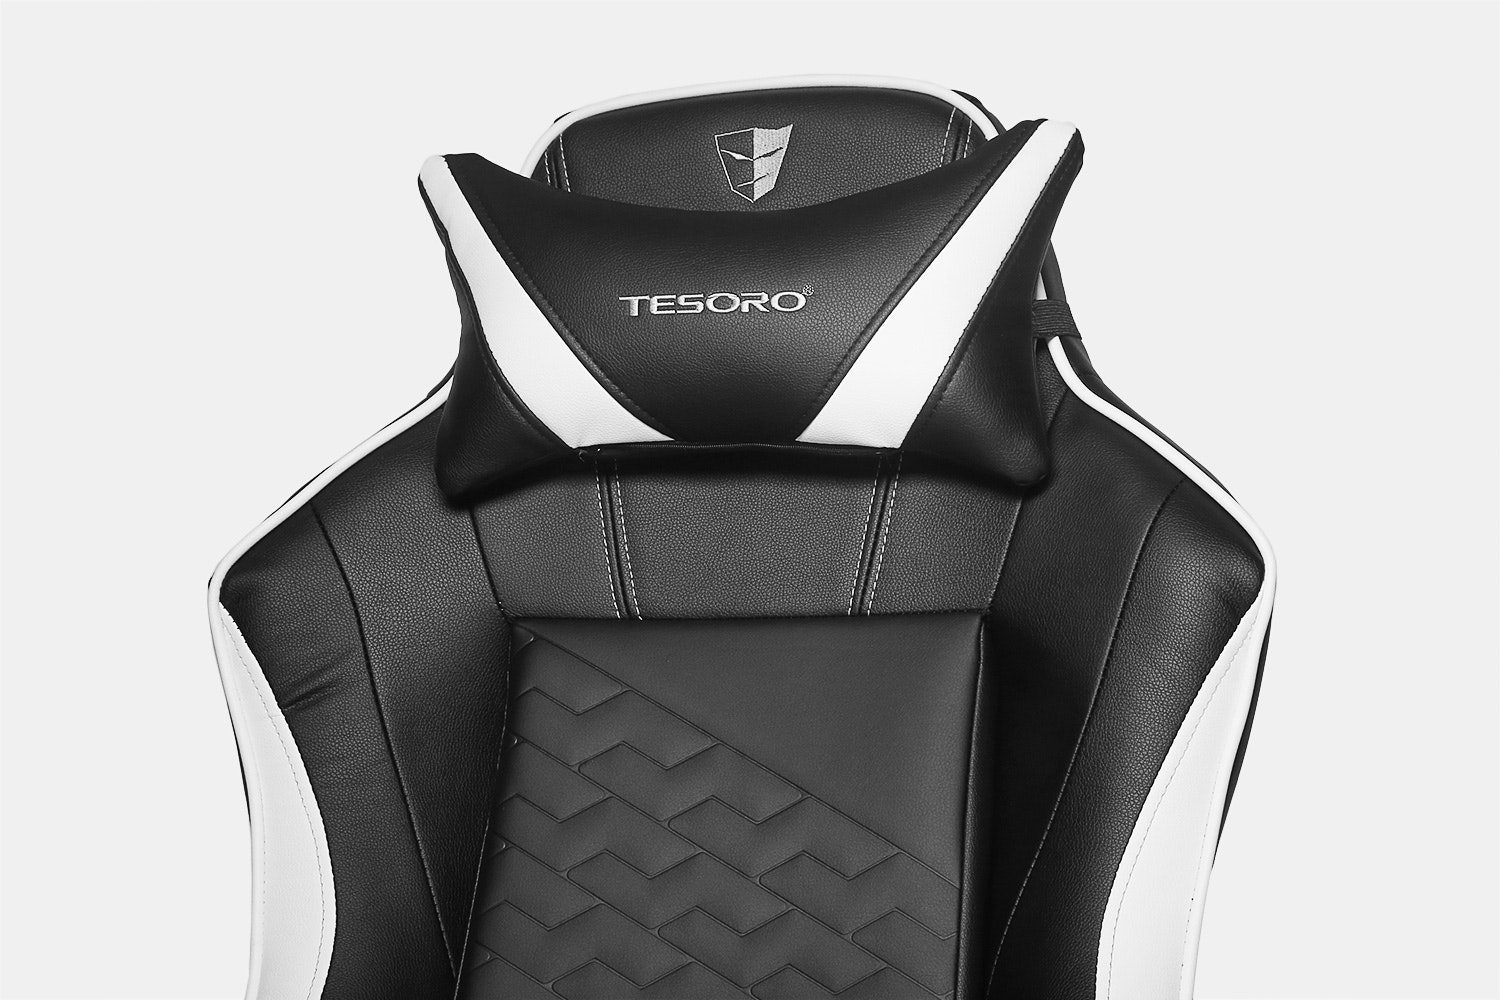 Tesoro Zone Balance Gaming Chairs